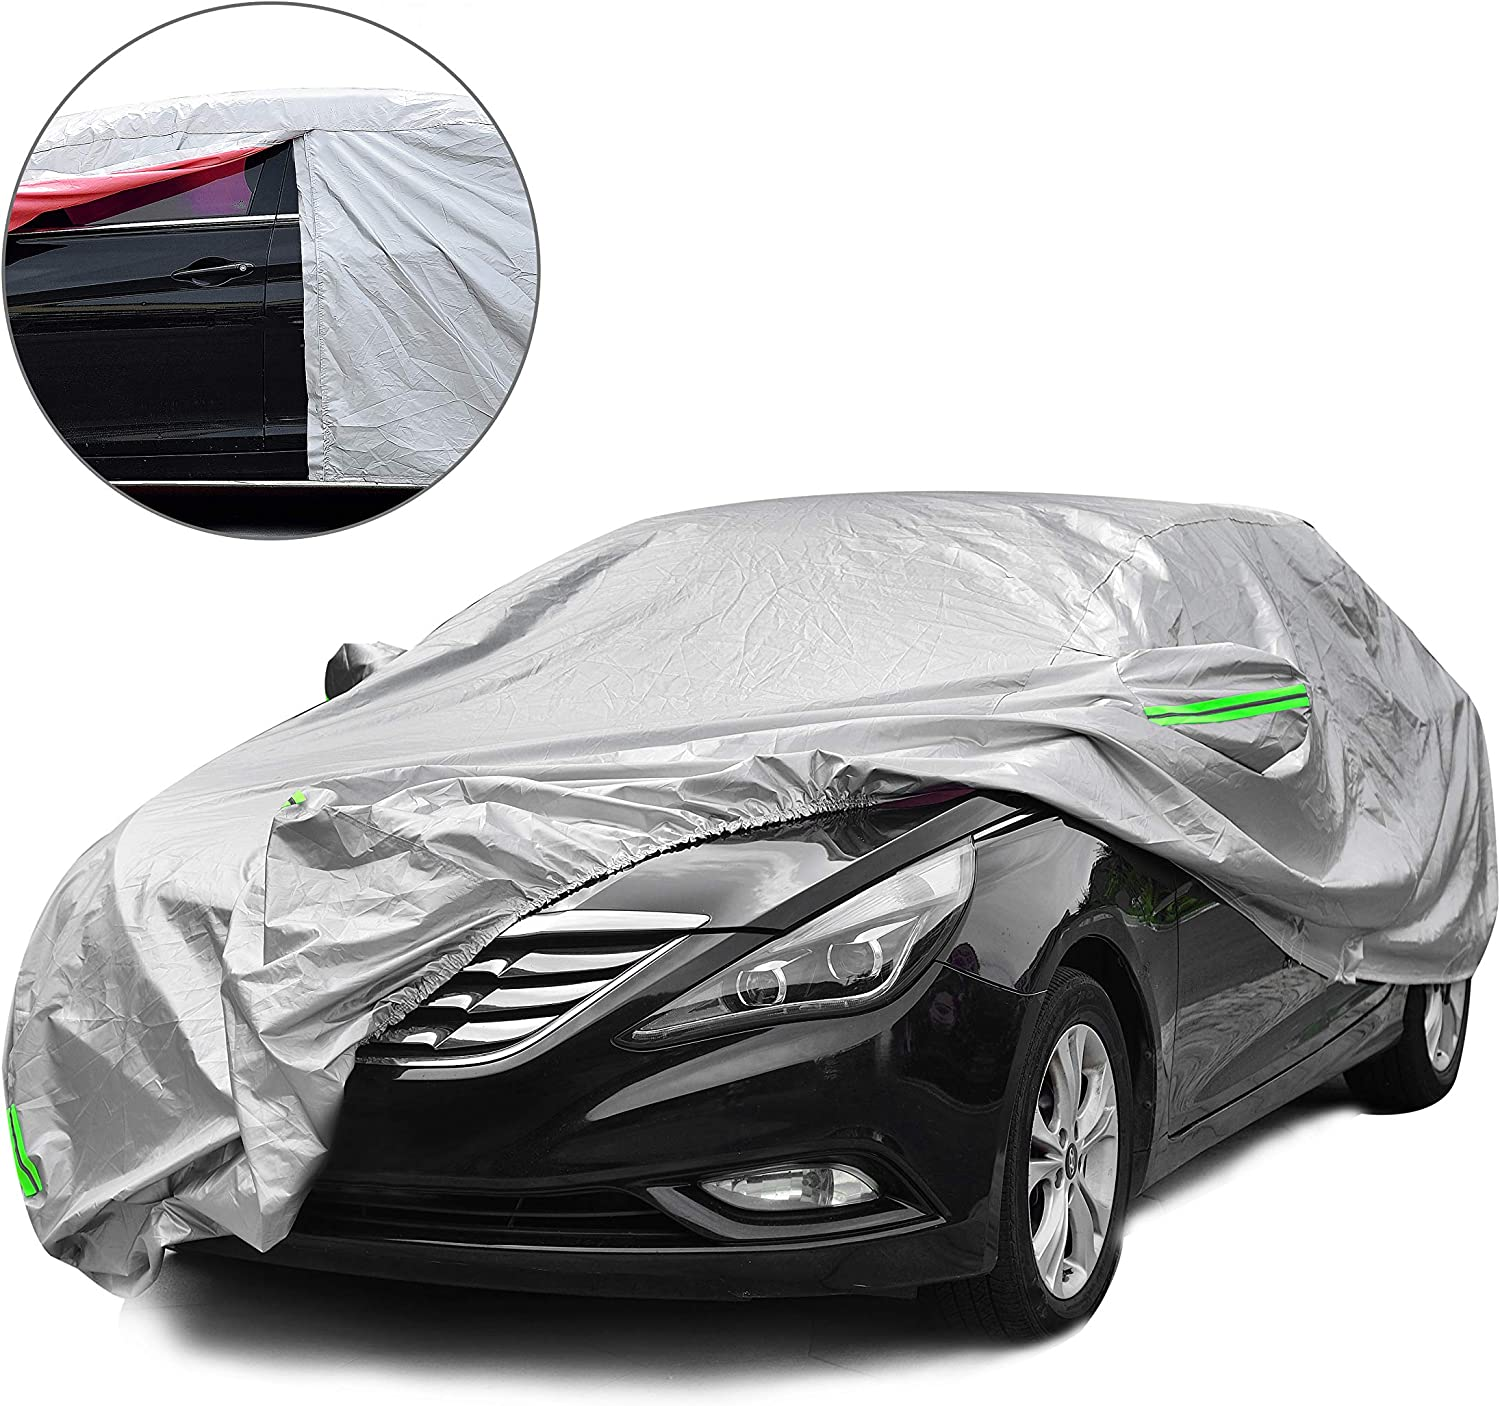 Tecoom LSC04 Waterproof UV-Proof Windproof Design Car Cover with Zipper Storage and Lock for All Weather Indoor Outdoor Fit 201-218 inches Sedan